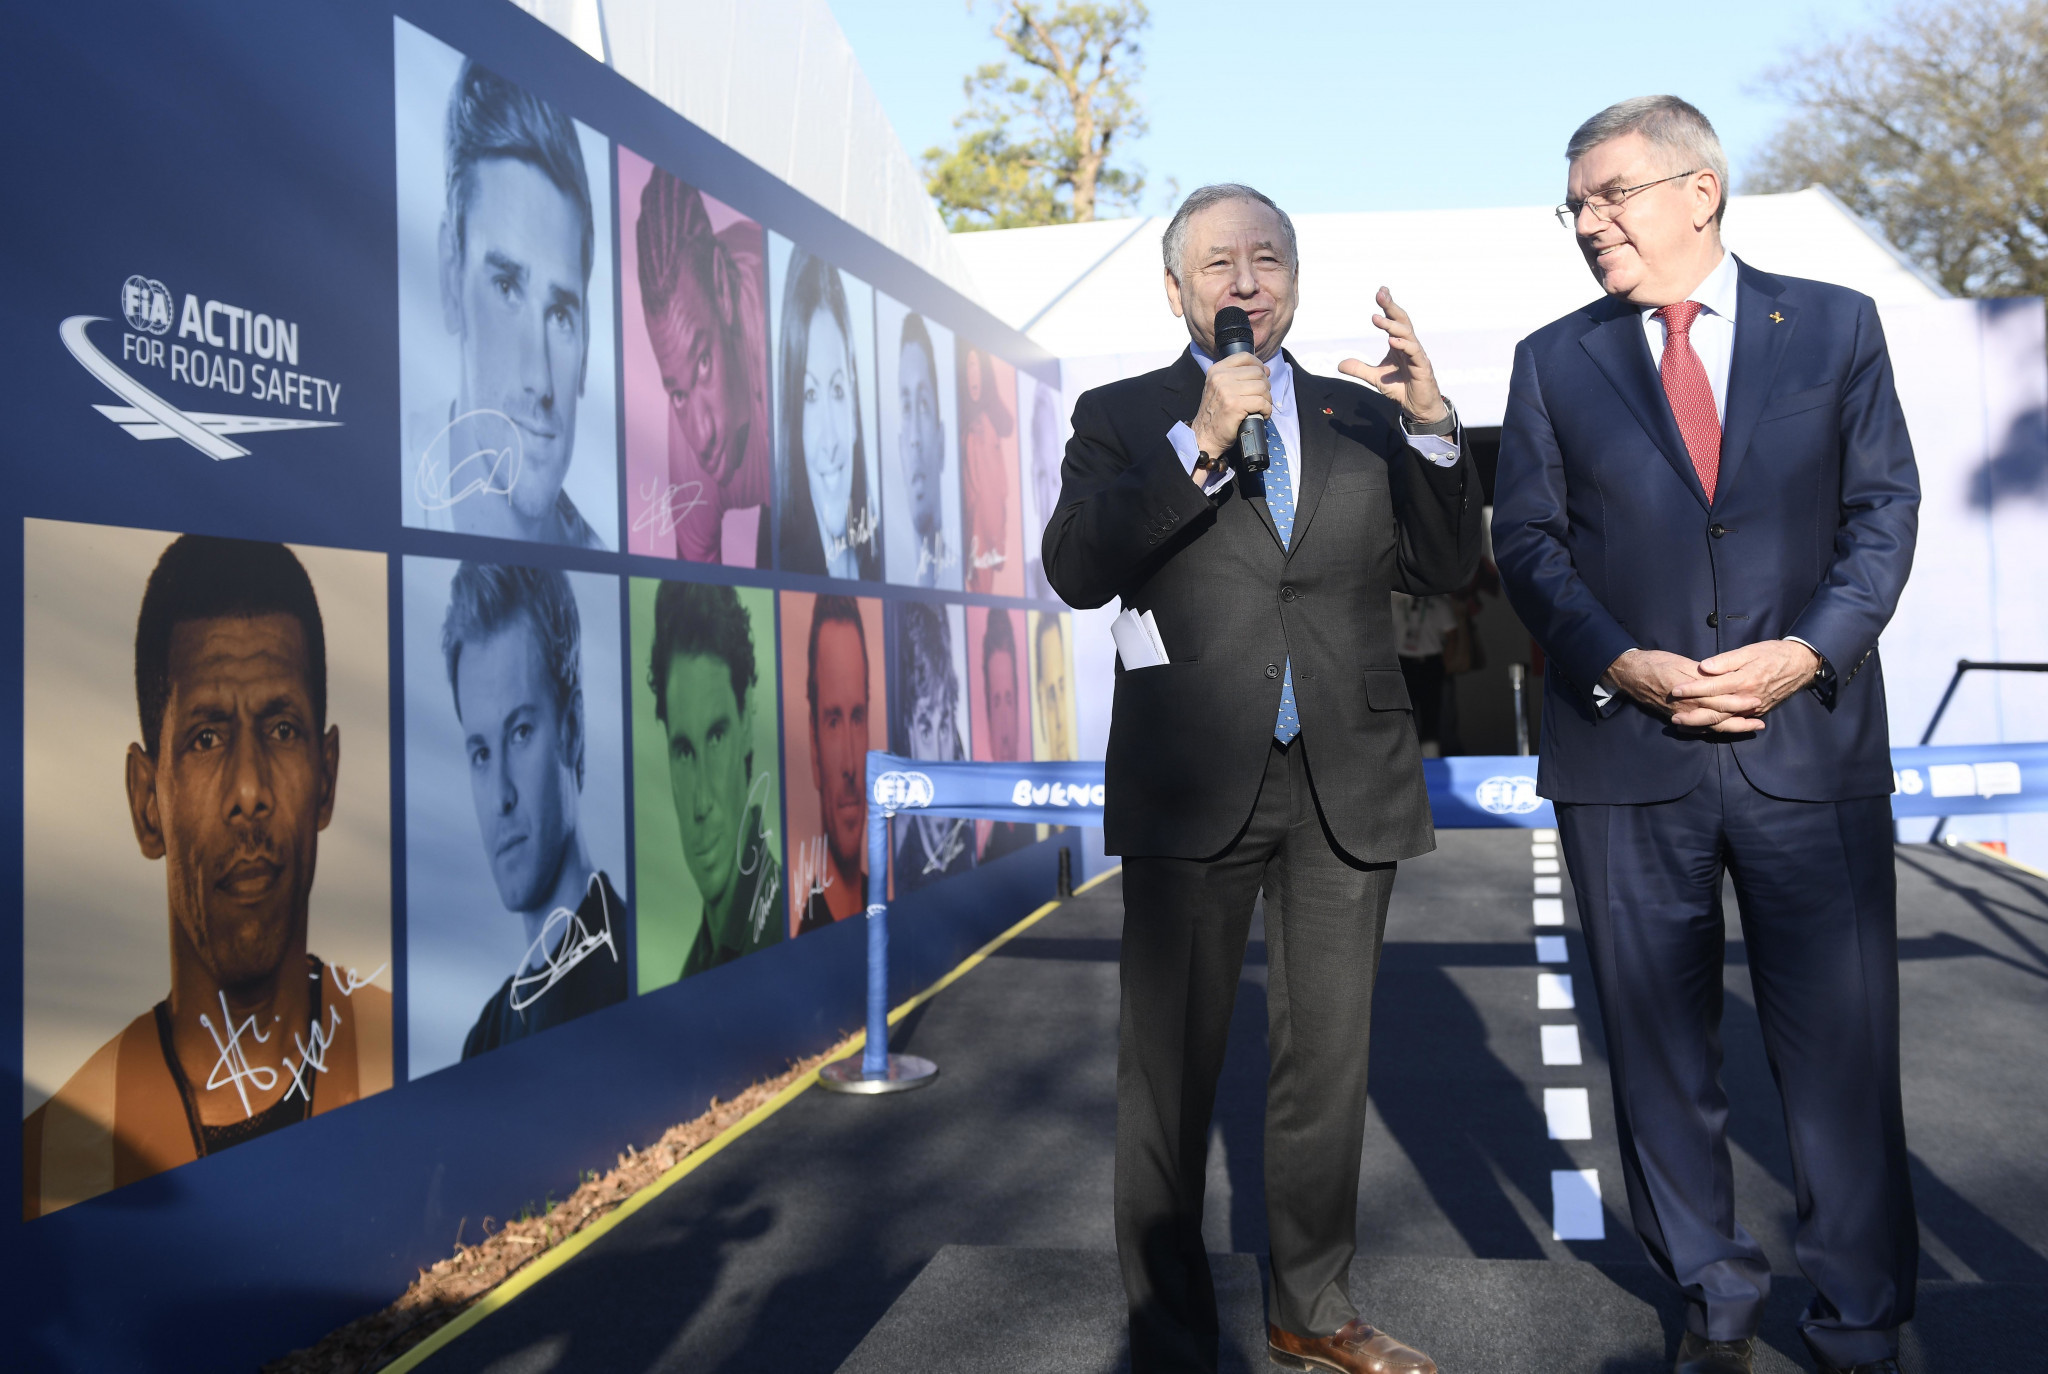 The FIA campaign launched at Buenos Aires 2018, in partnership with outdoor advertising company JCDecaux, is designed to instill in youngsters the importance of road safety ©FIA